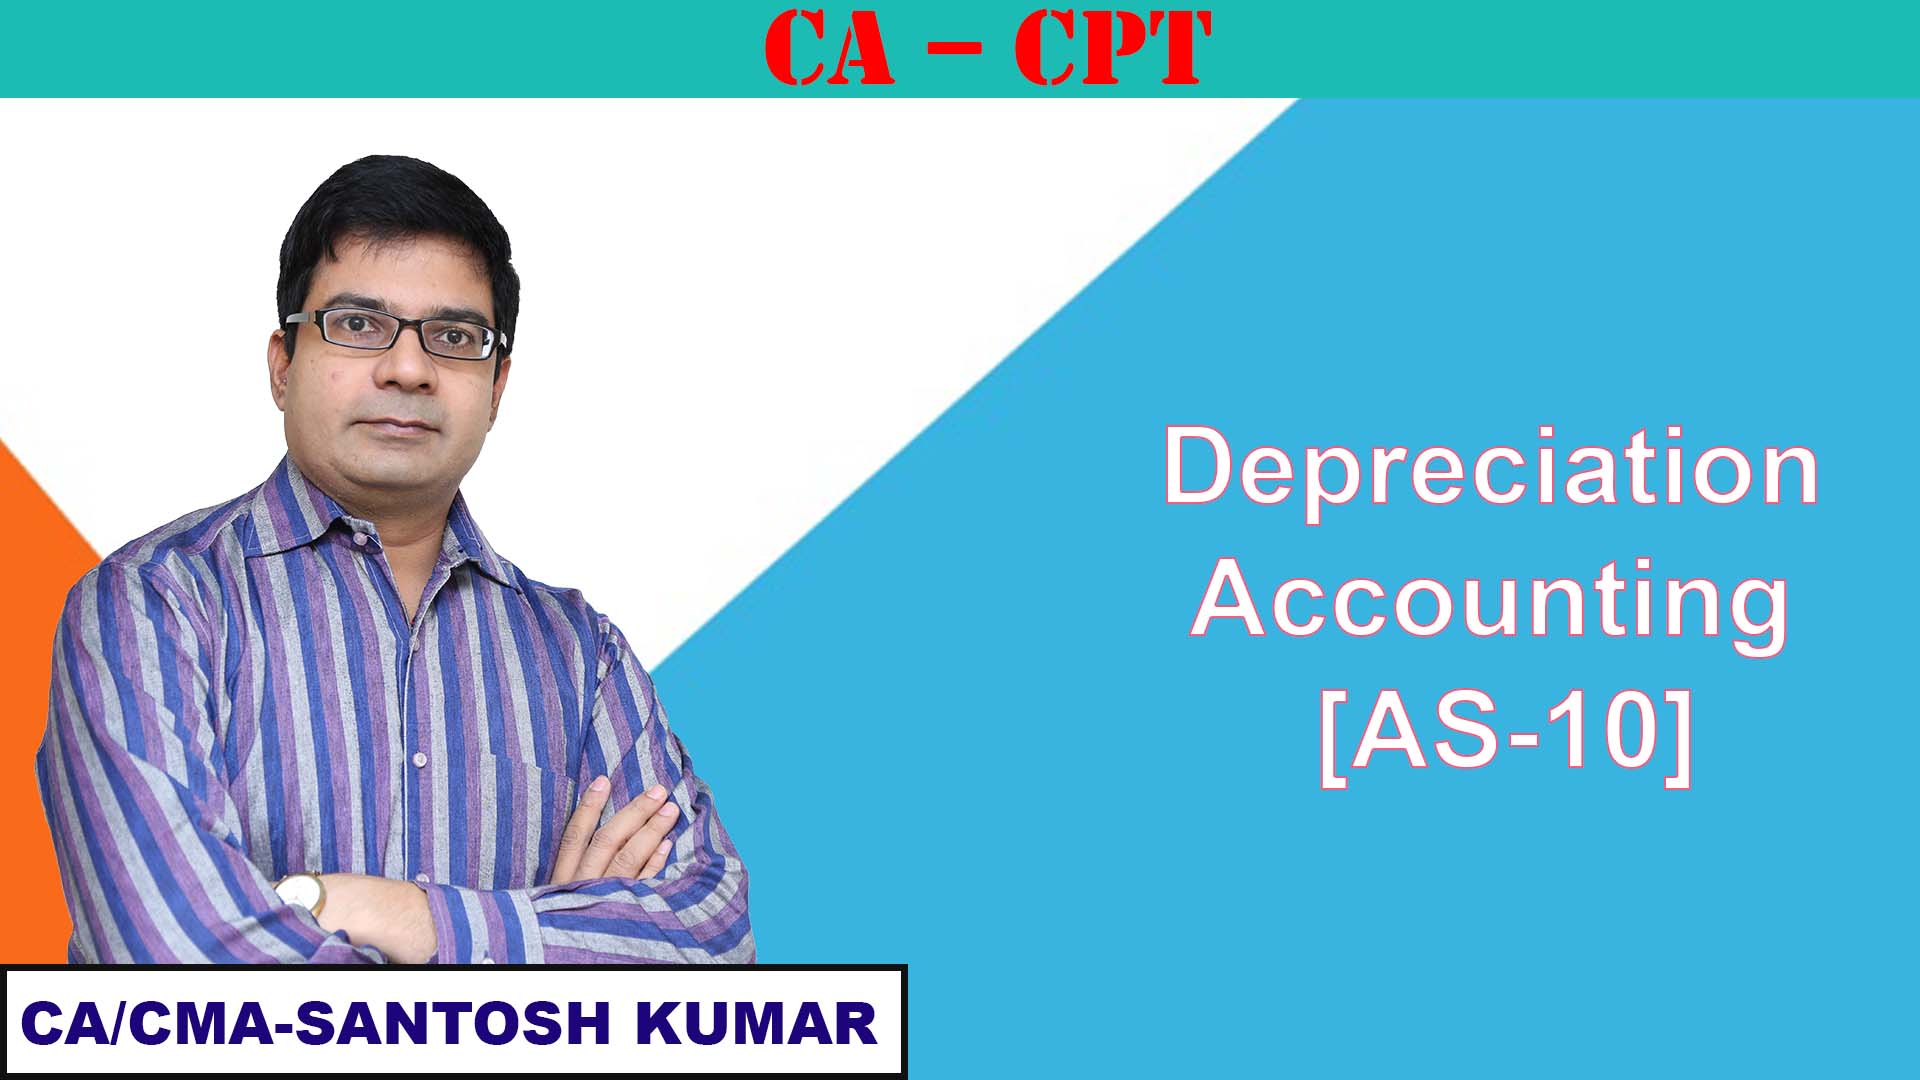 Depreciation accounting [AS-10]